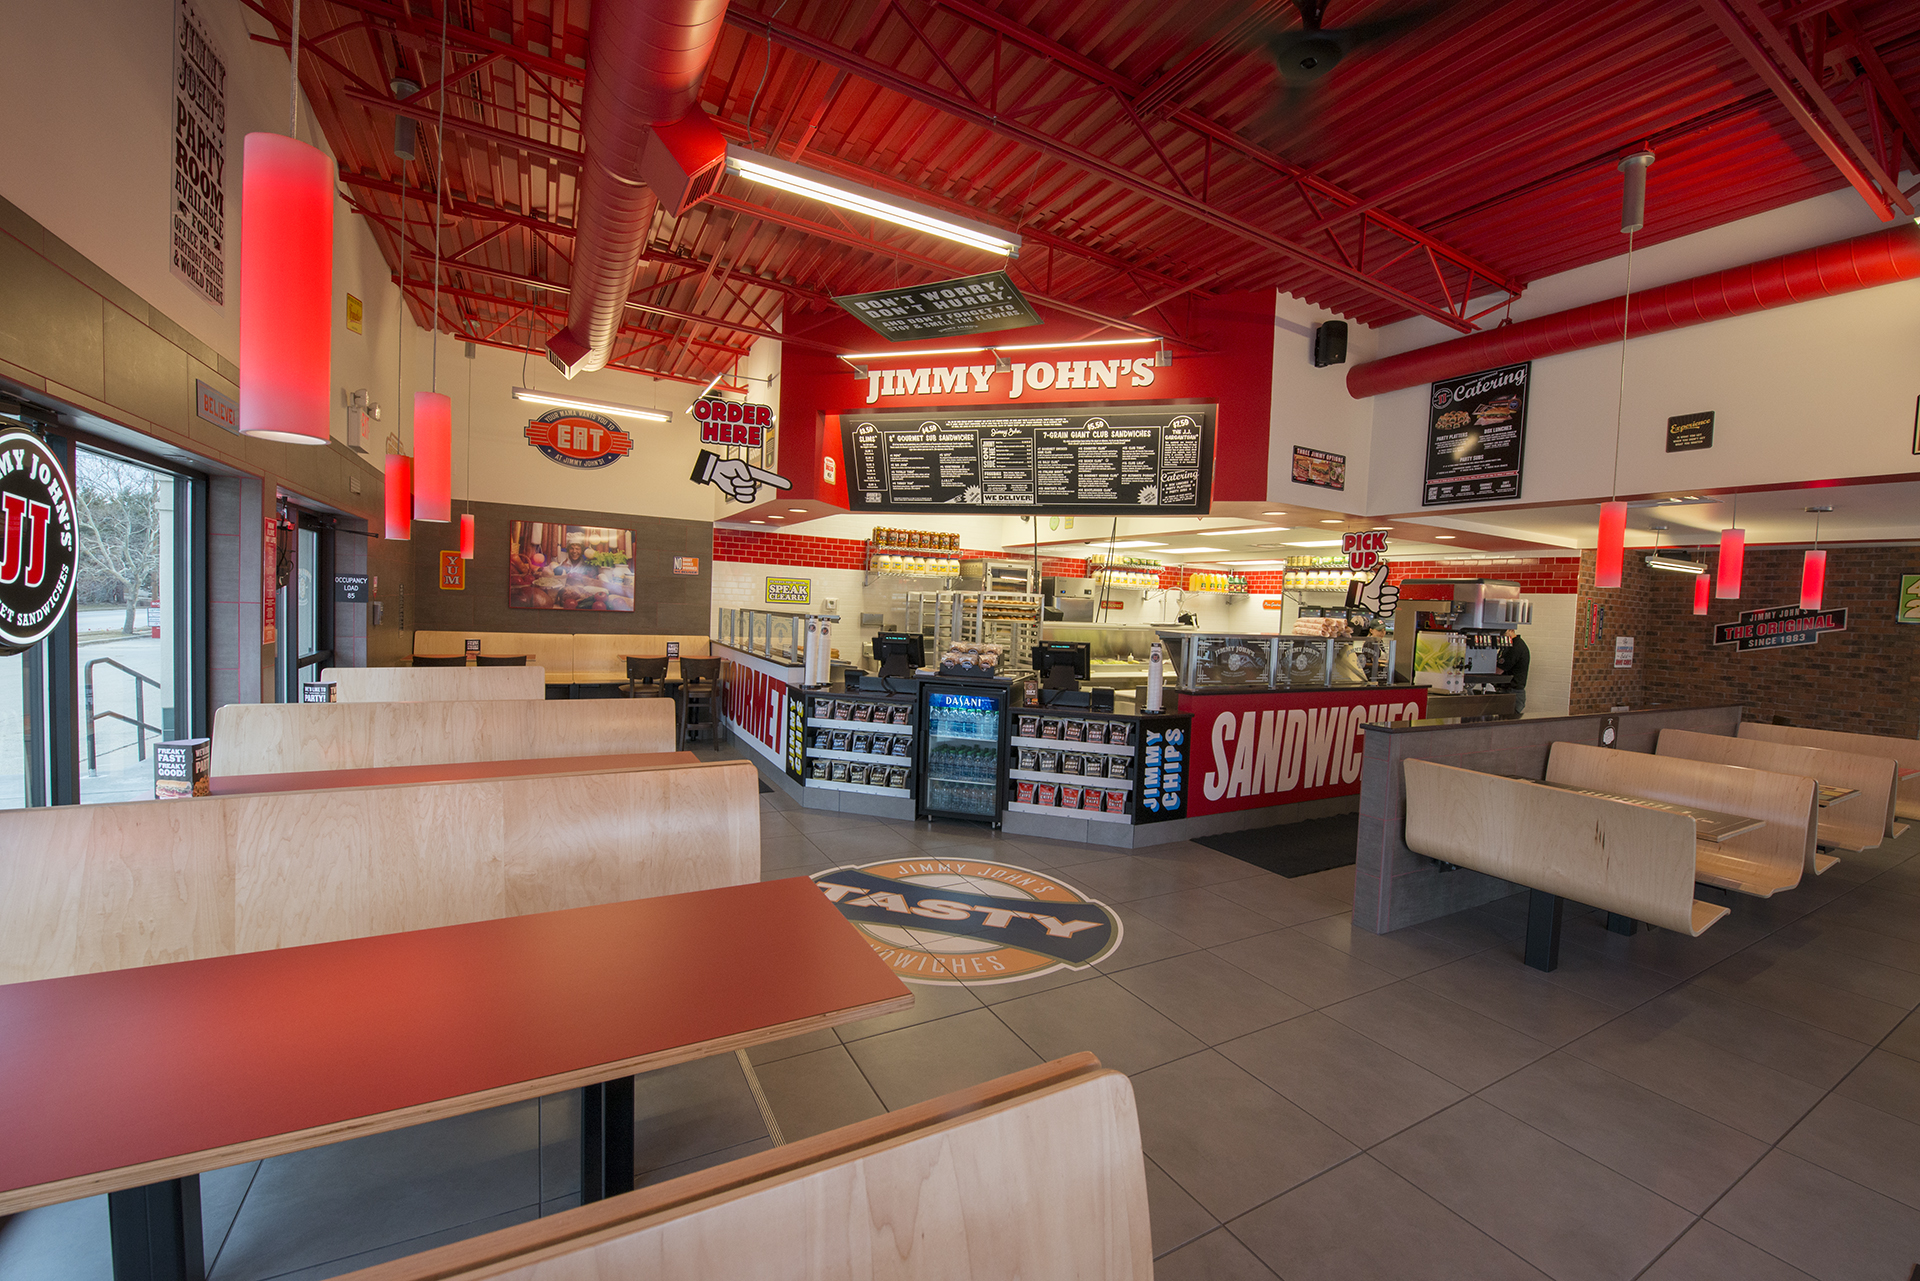 FileJimmy John Store Interior With New Design Launched 2013 Champaign Illinoisjpg